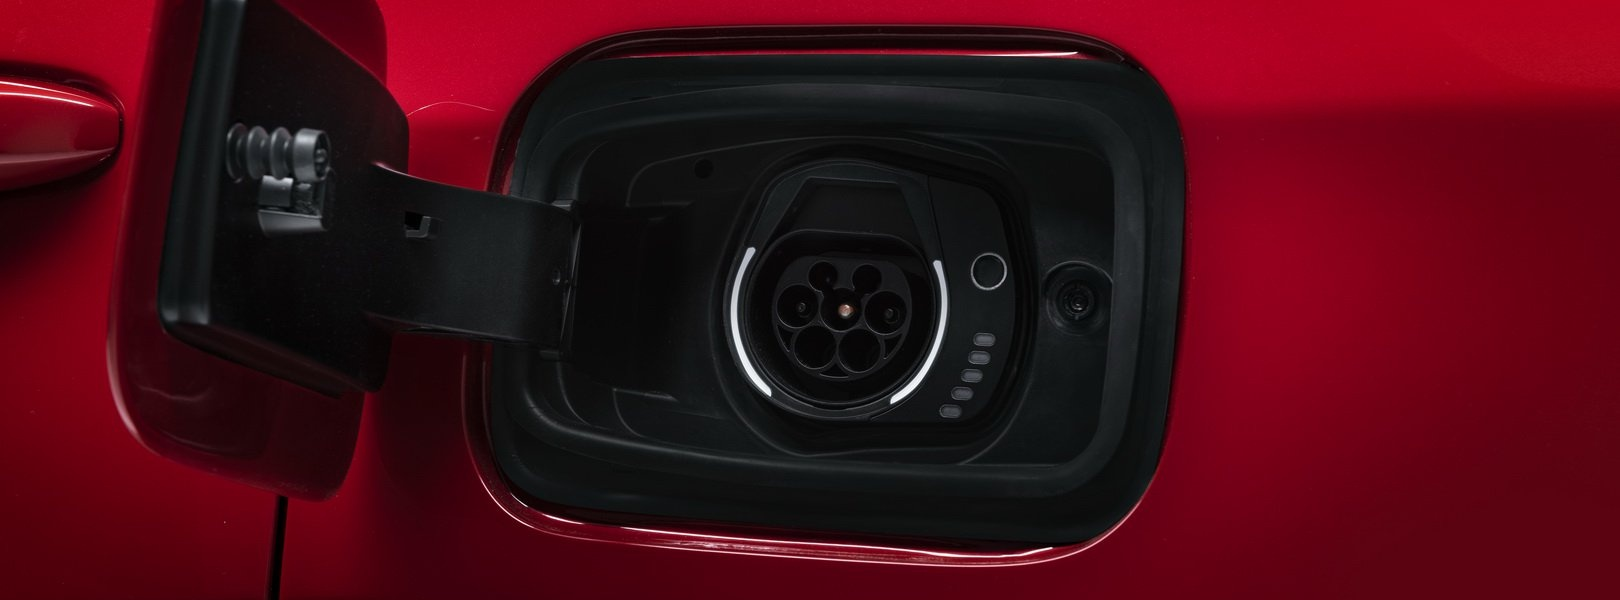 2019-jeep-compass-phev-8.jpg